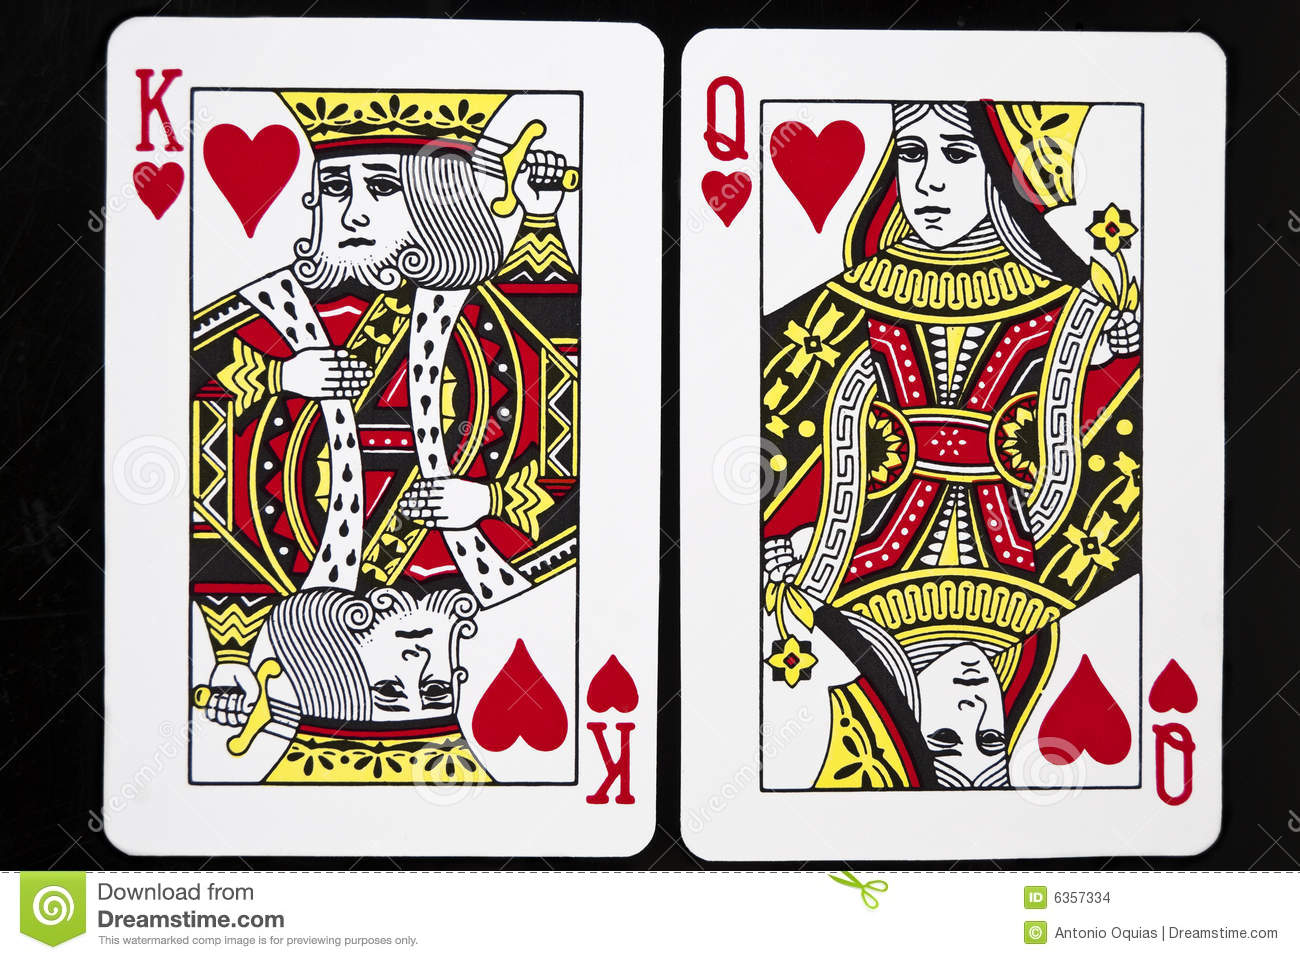 king of hearts video game